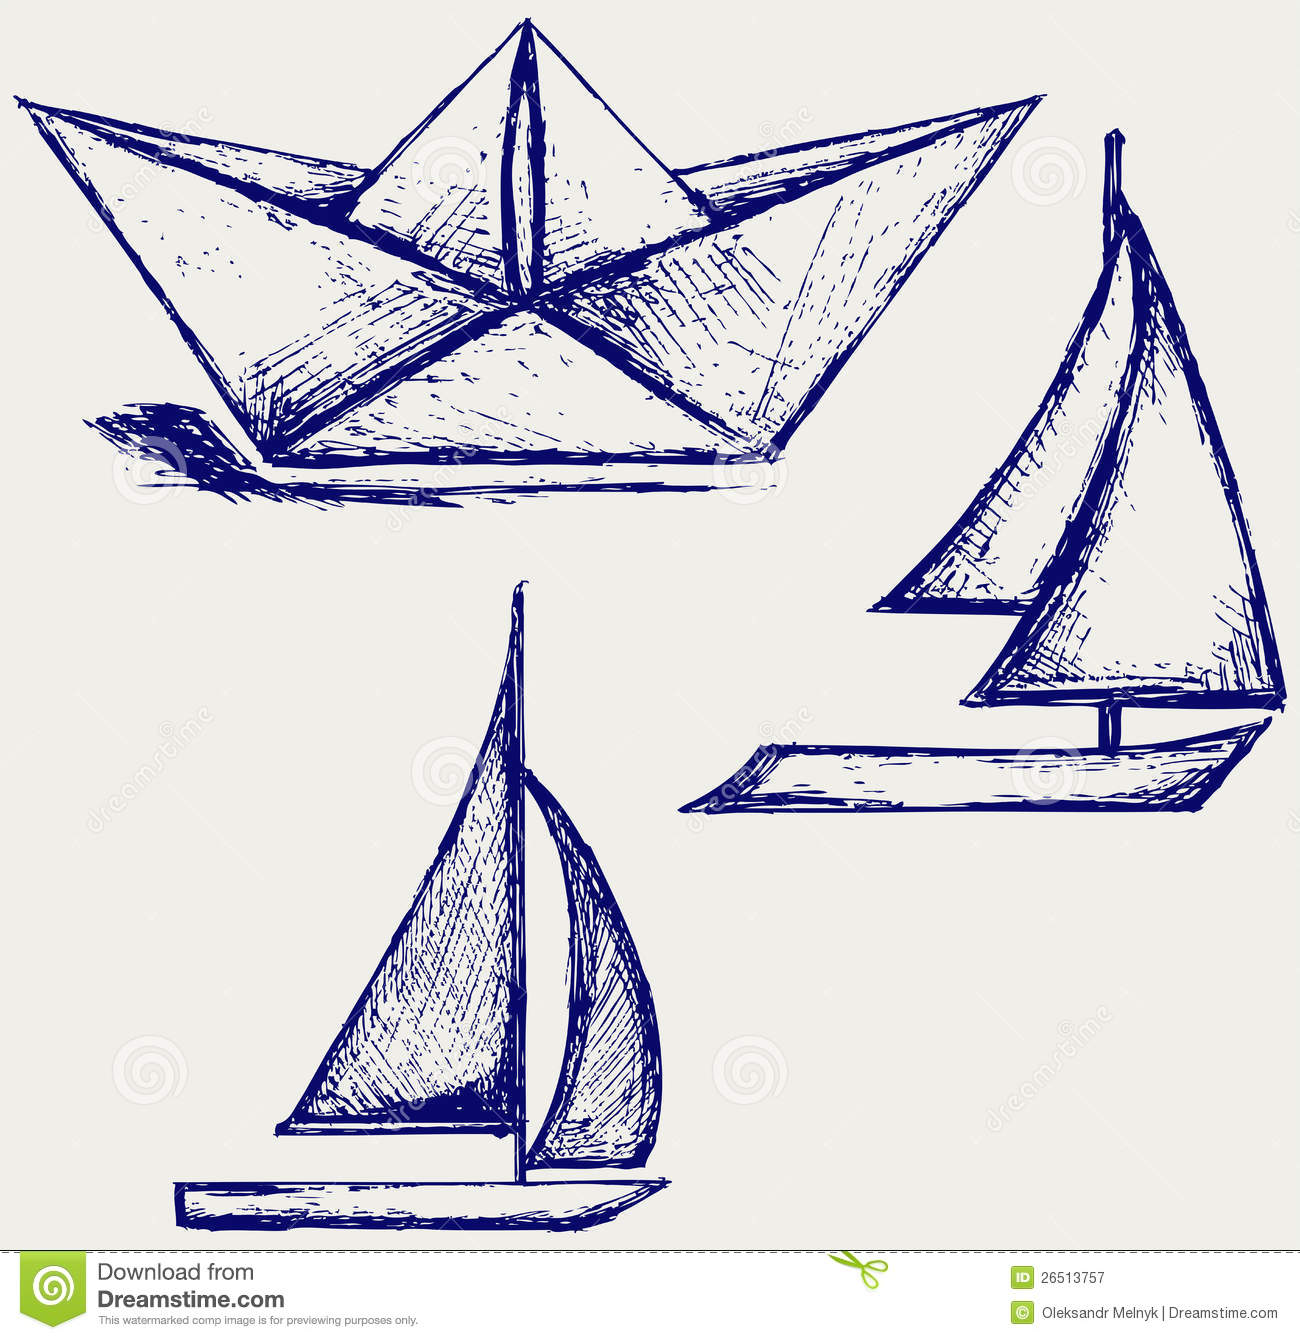 Origami sailboat clip arts clip art  ClipartLogocom